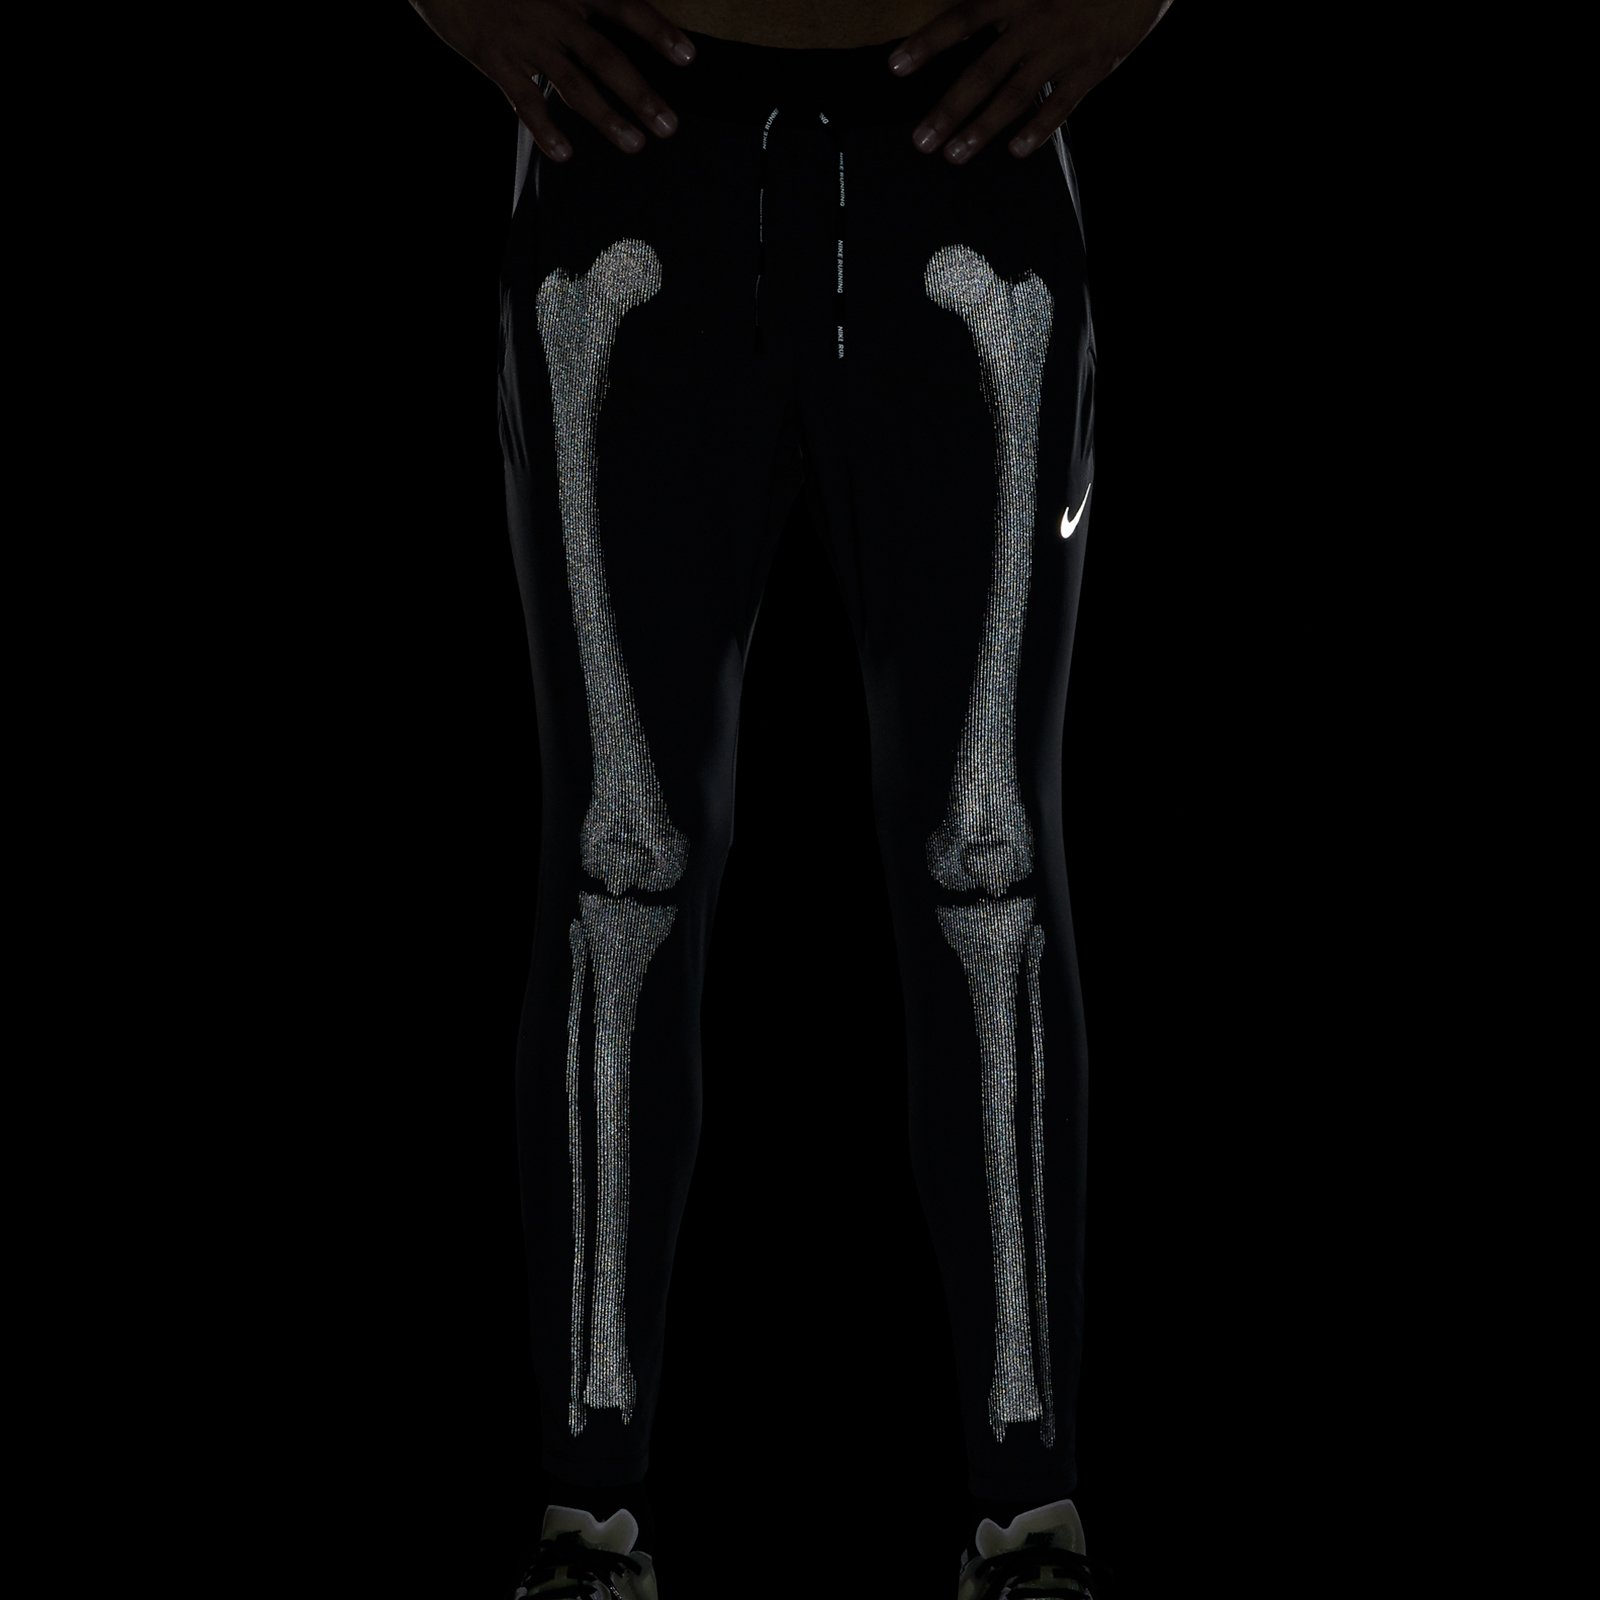 Nike Wmns Skeleton Tight Cd6405 010 Sneakersnstuff